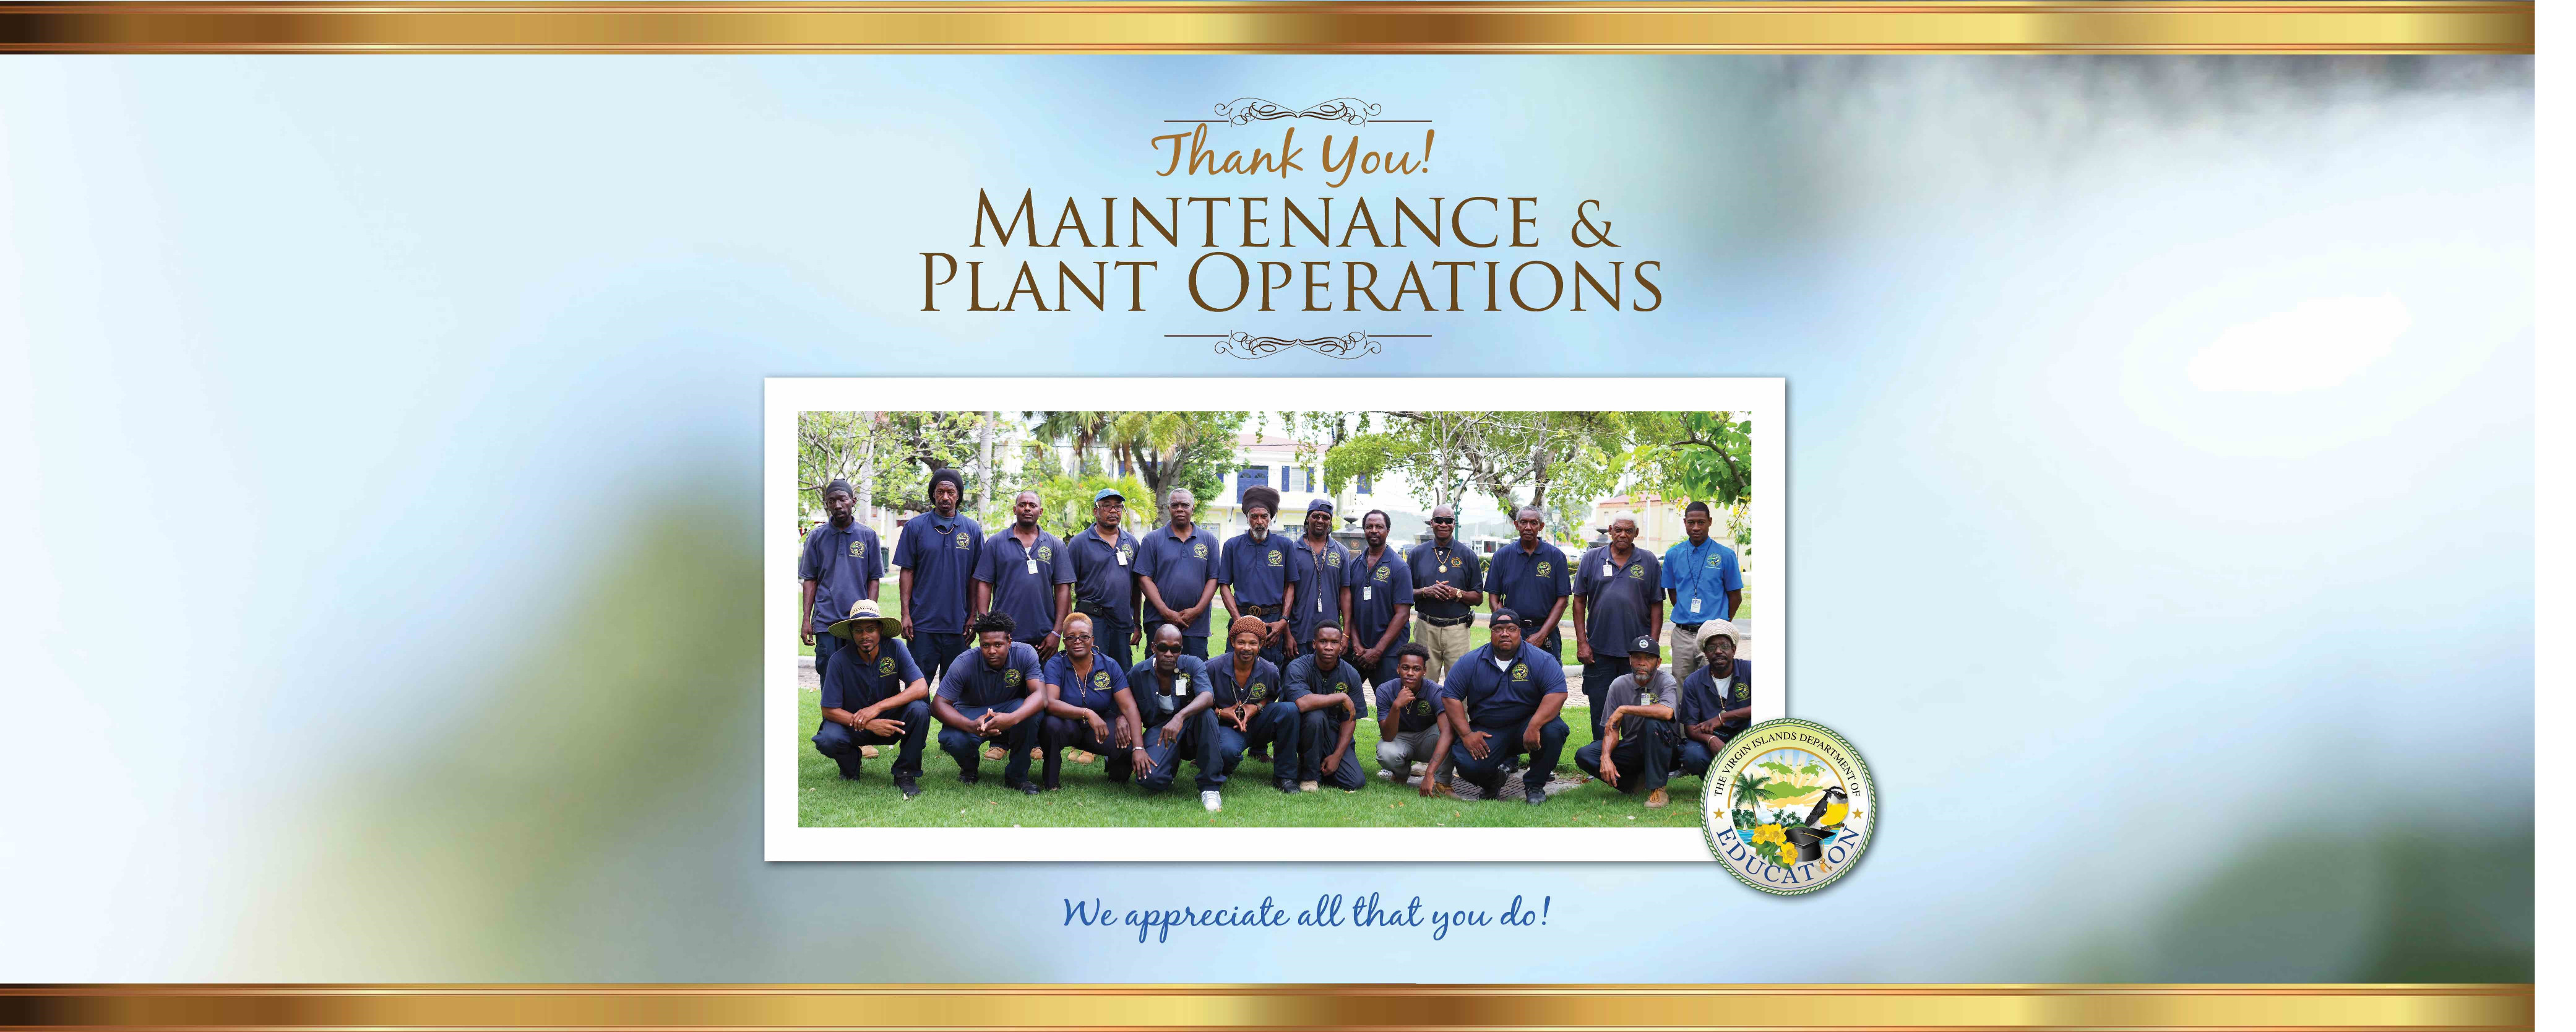 A Special Thank You to Our Maintenance and Plant Operations Team in the STTJ District